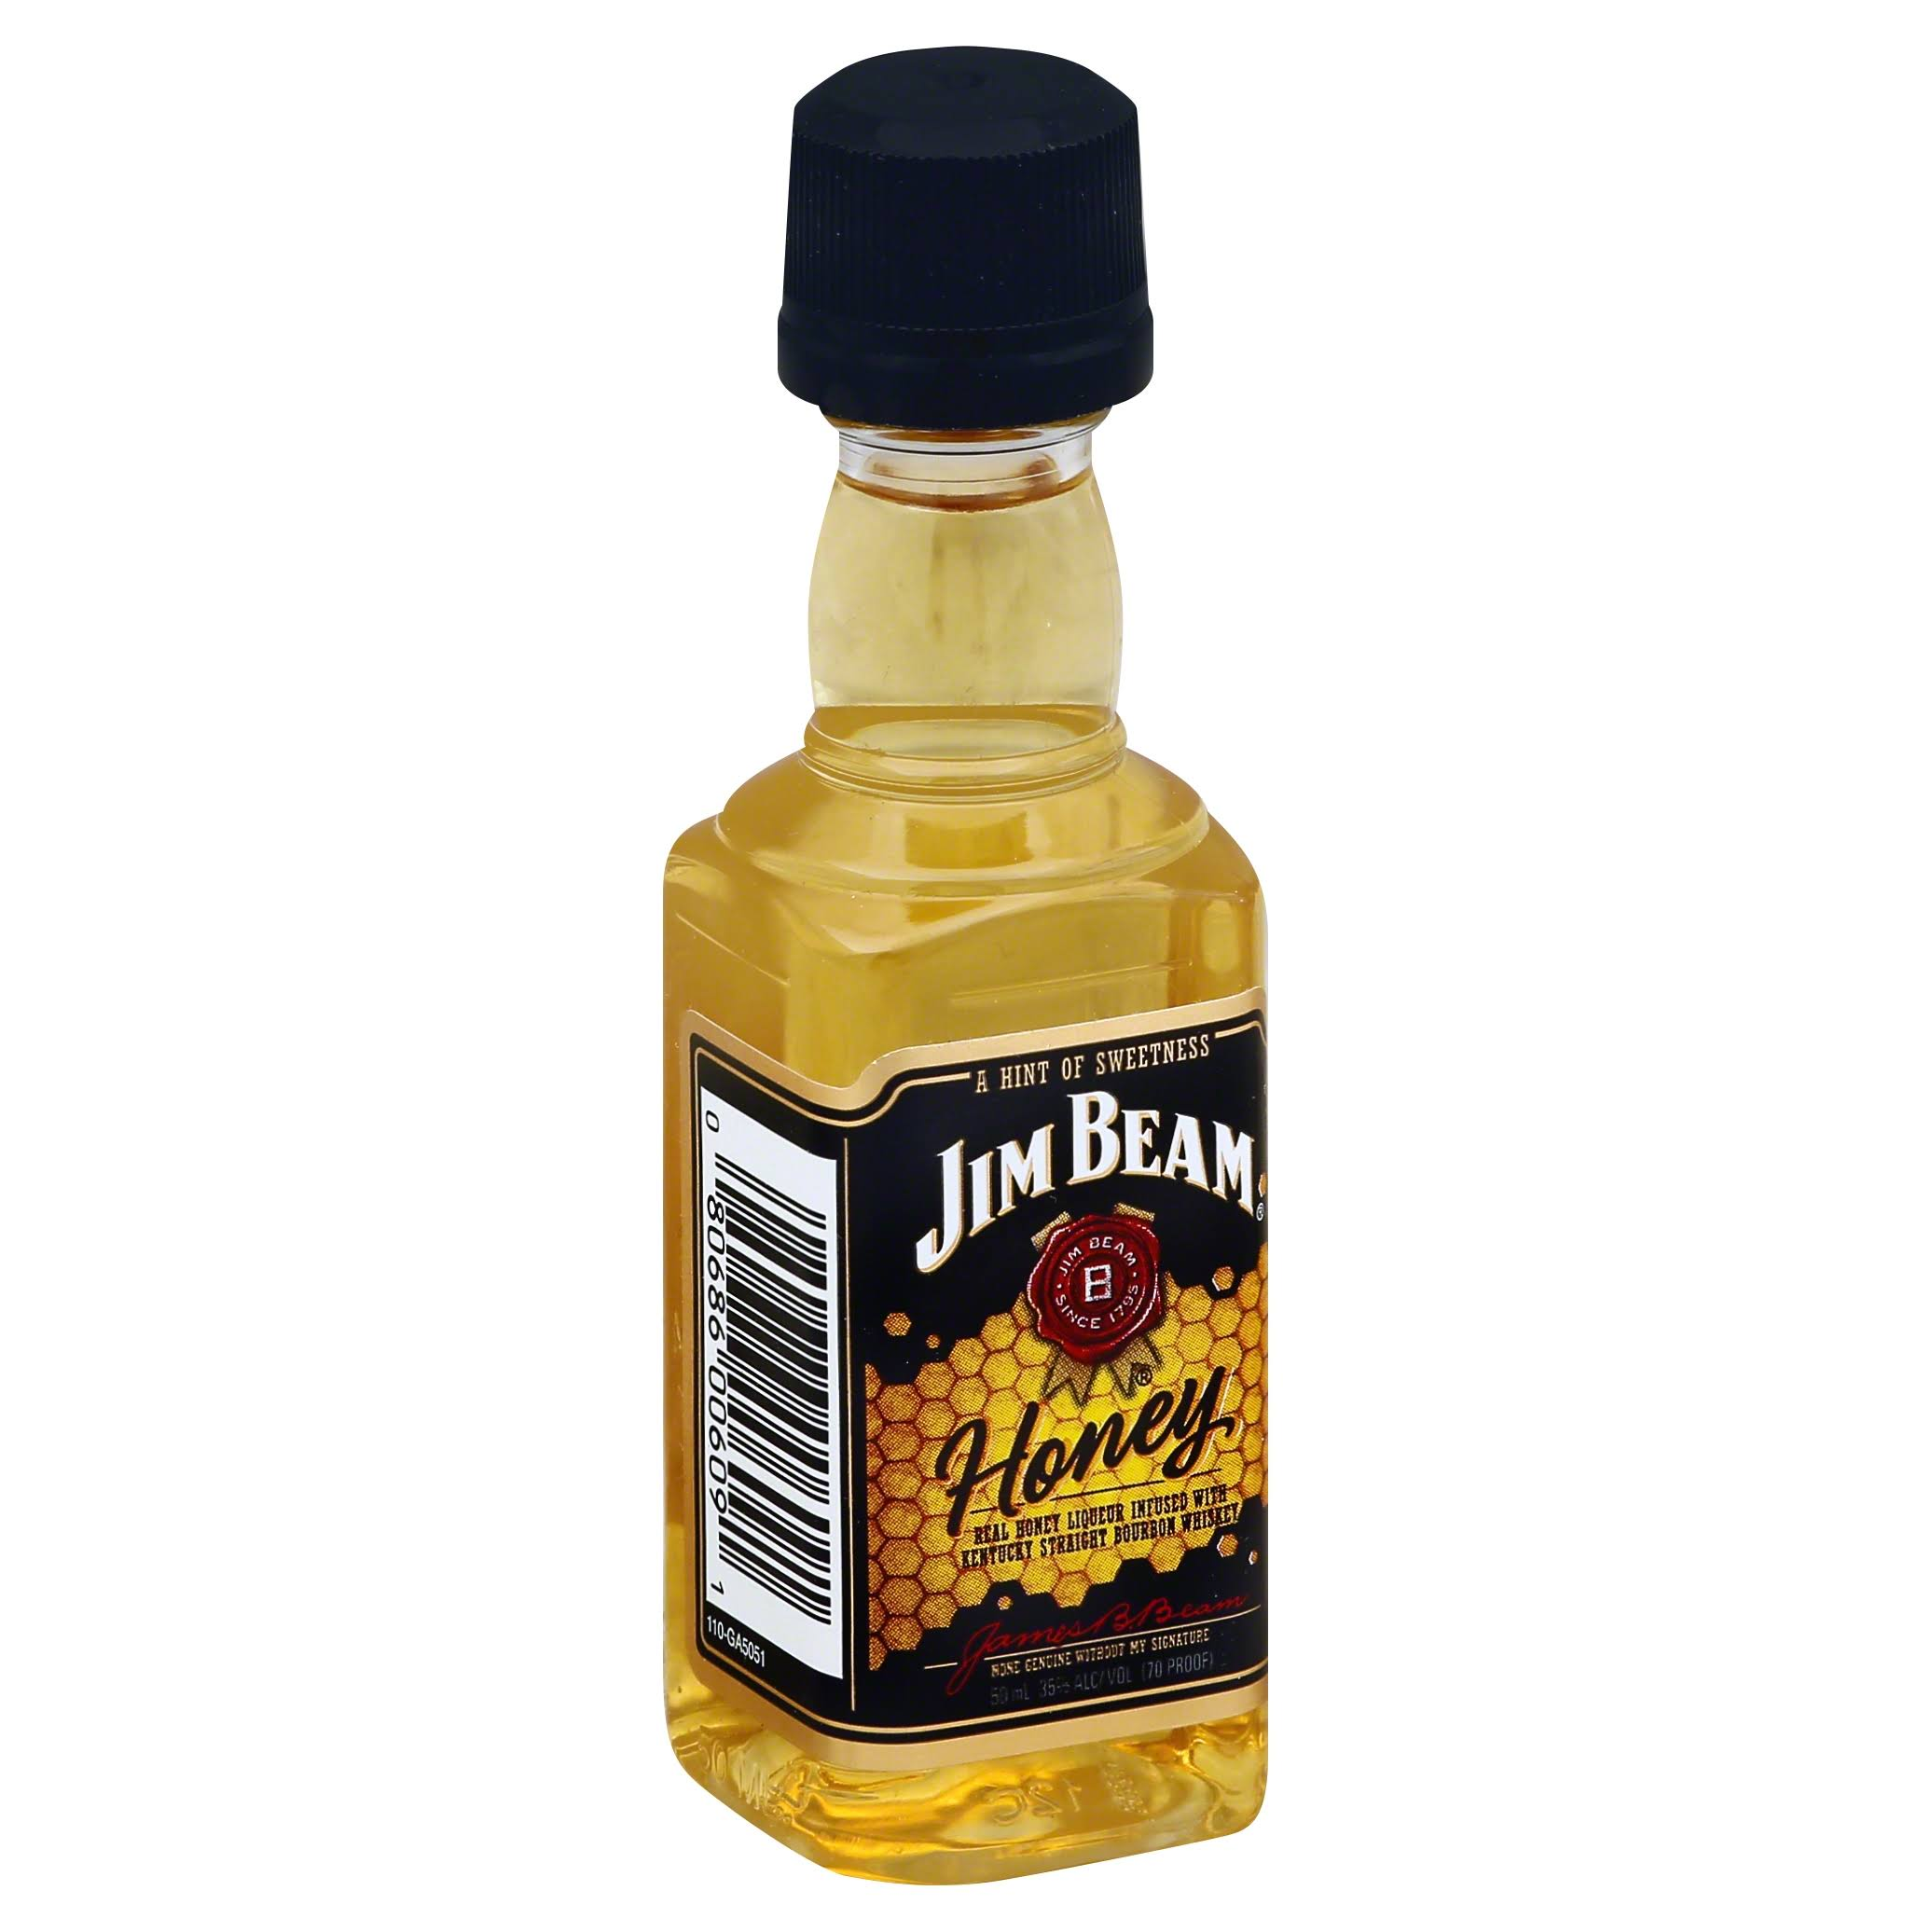 Jim Beam Honey Bourbon Whiskey - 50ml